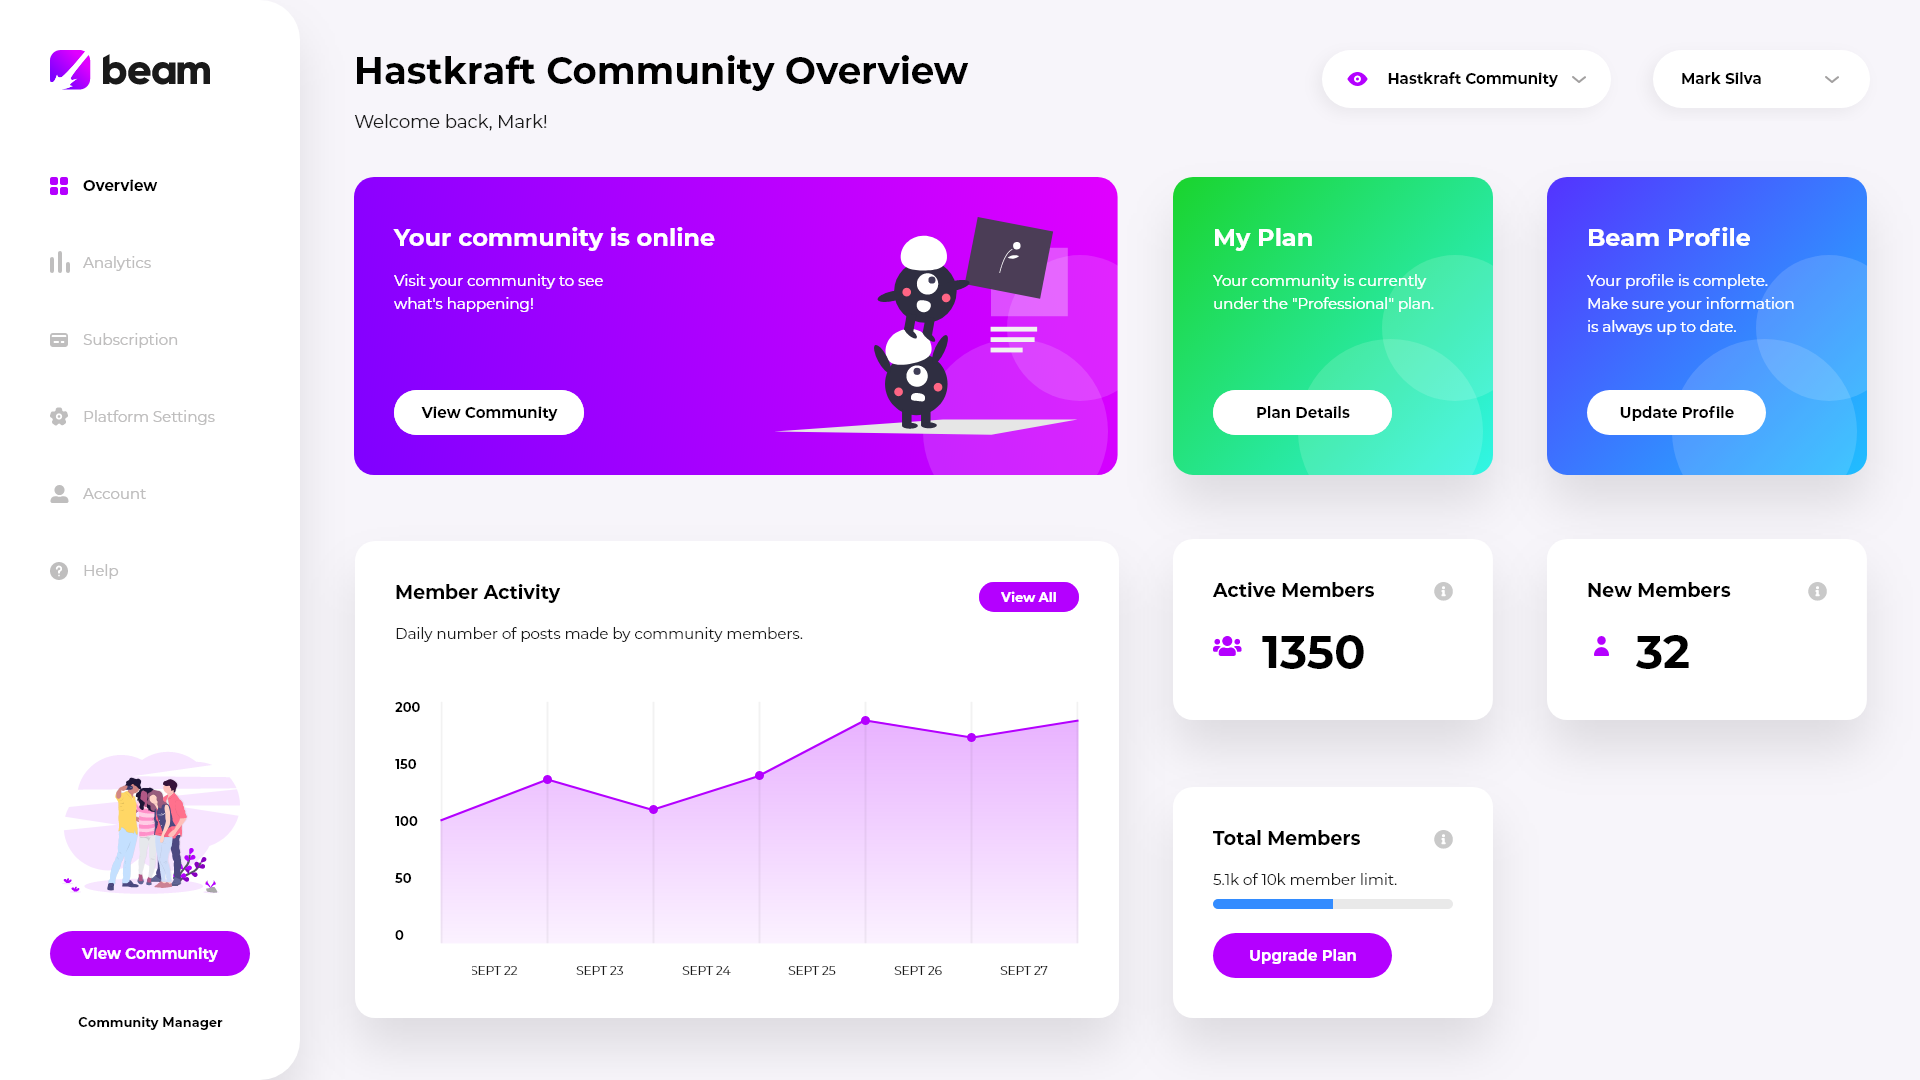 An image showing Beam.gg's community dashboard.